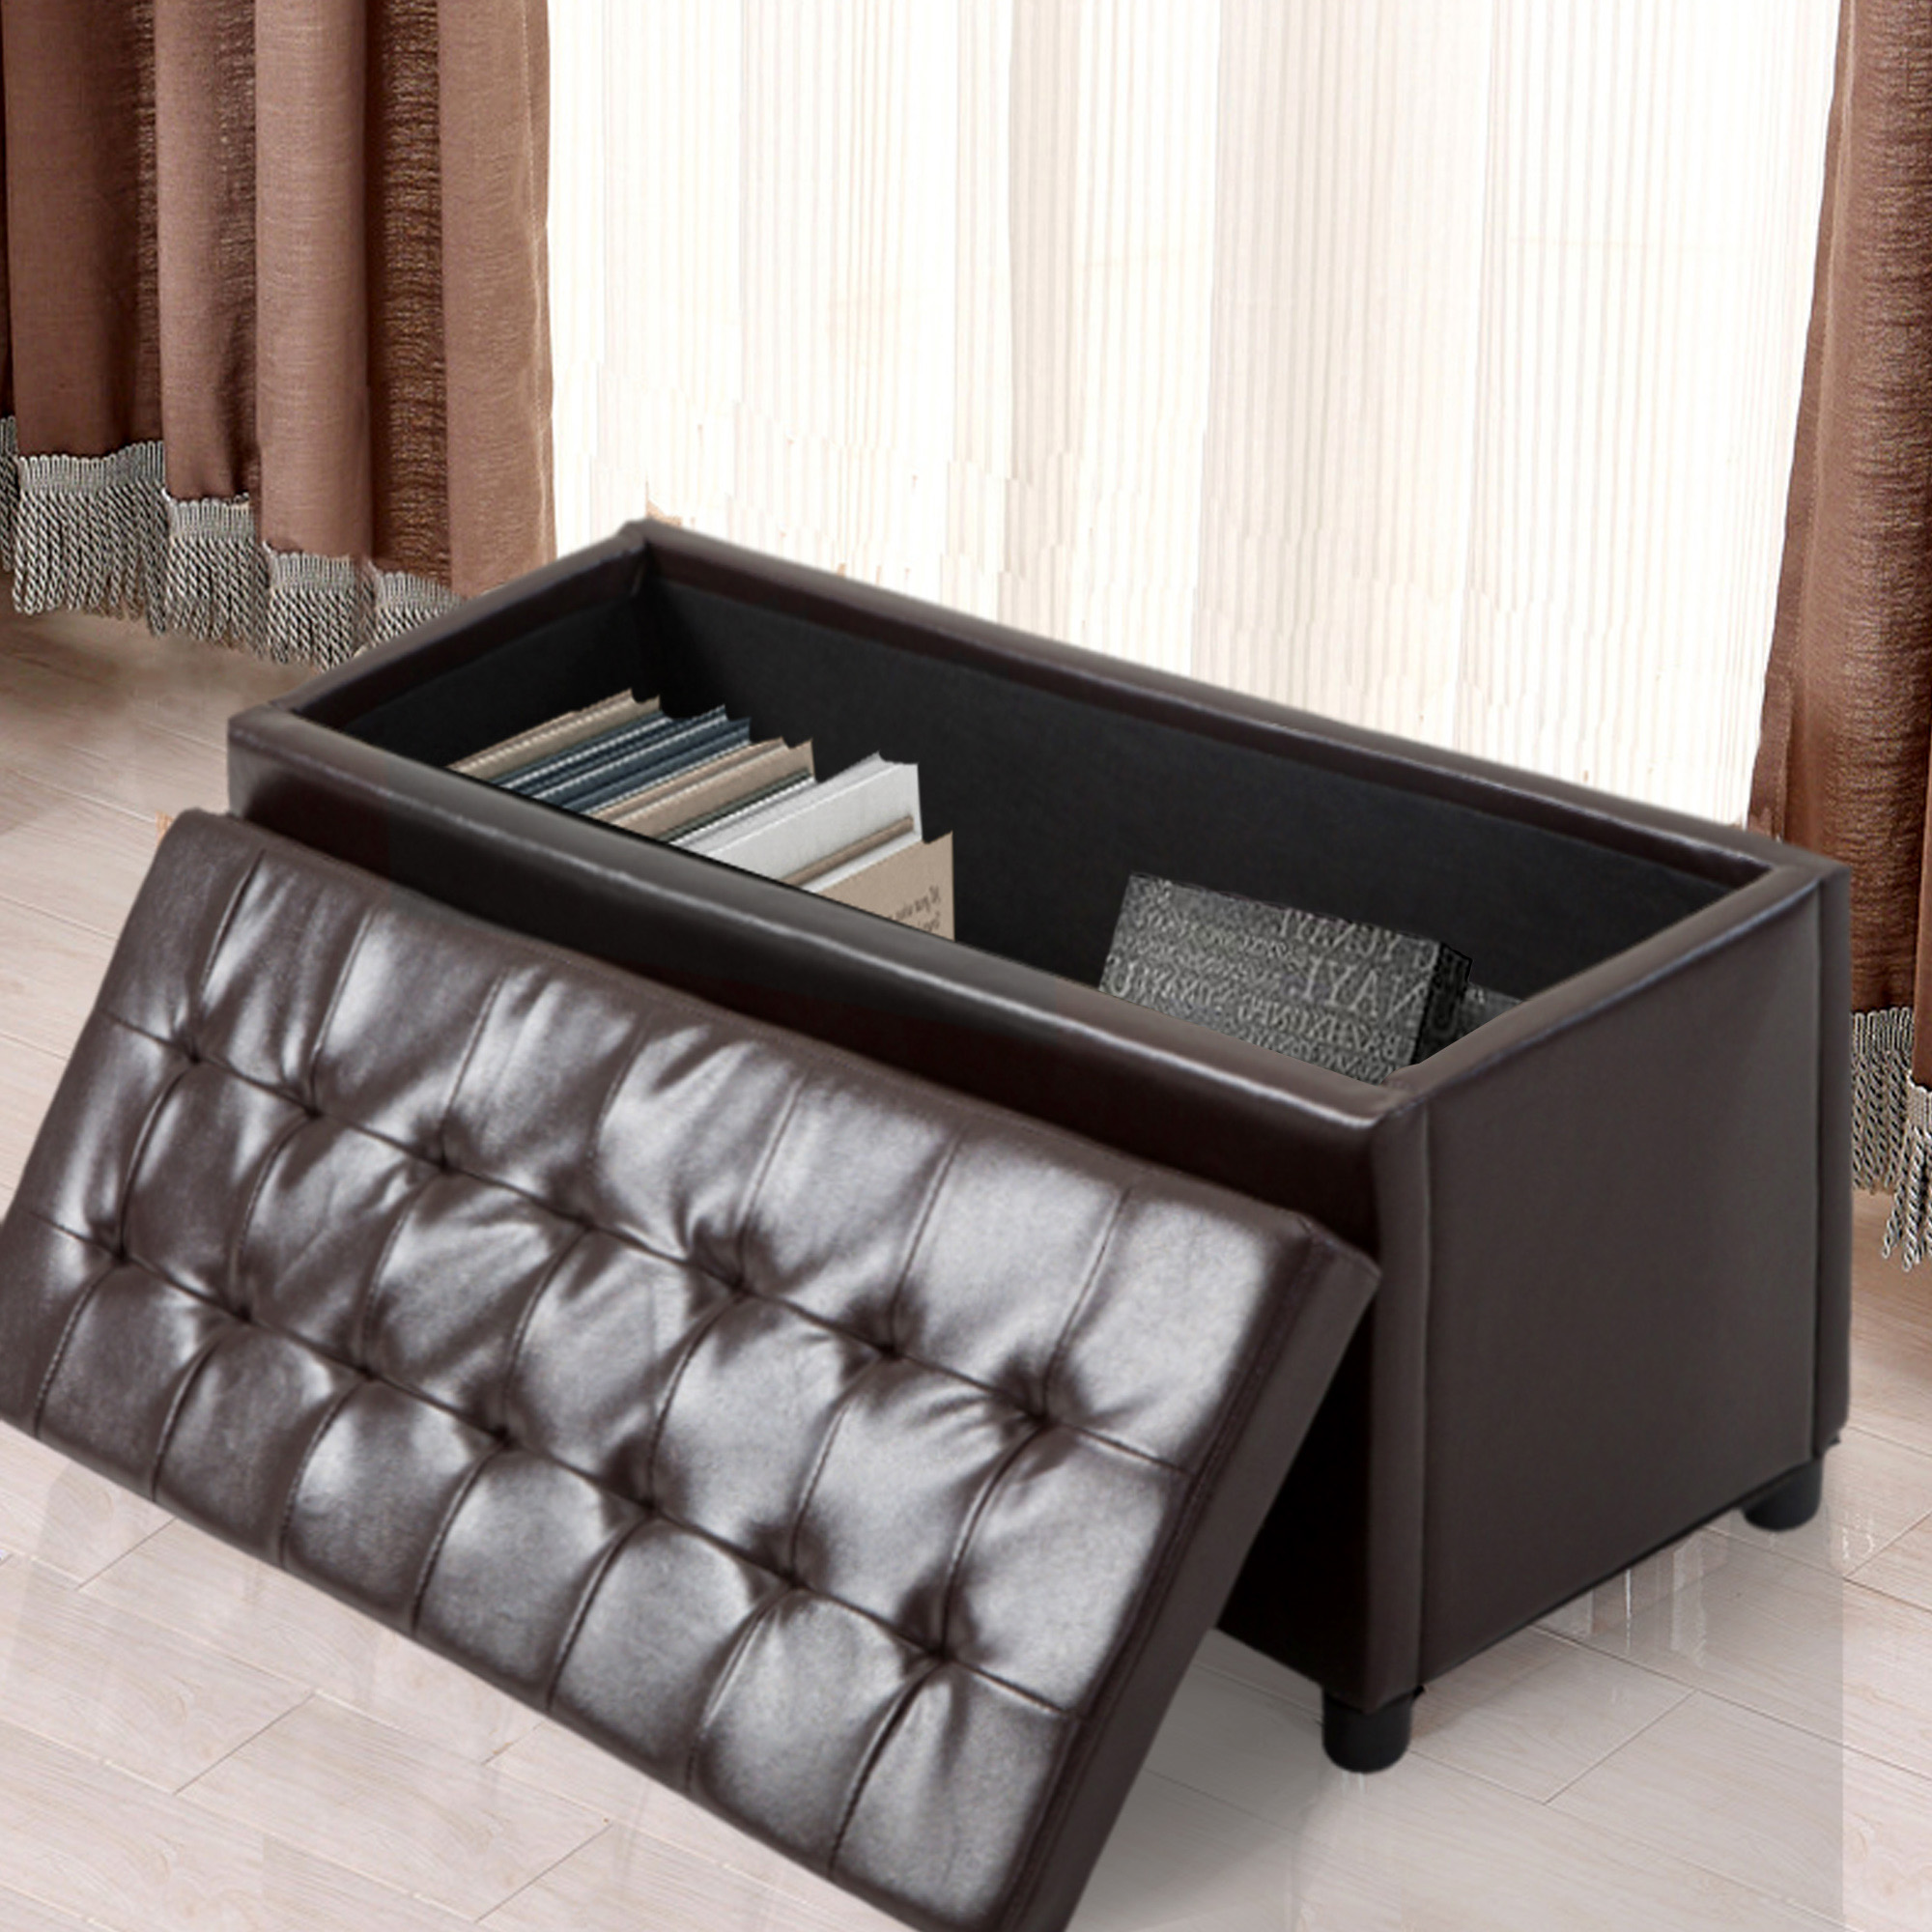 Cloud Mountain Storage Ottoman Faux Leather Sofa Bench Foot Rest Stool Seat  Chest Toy Box Living